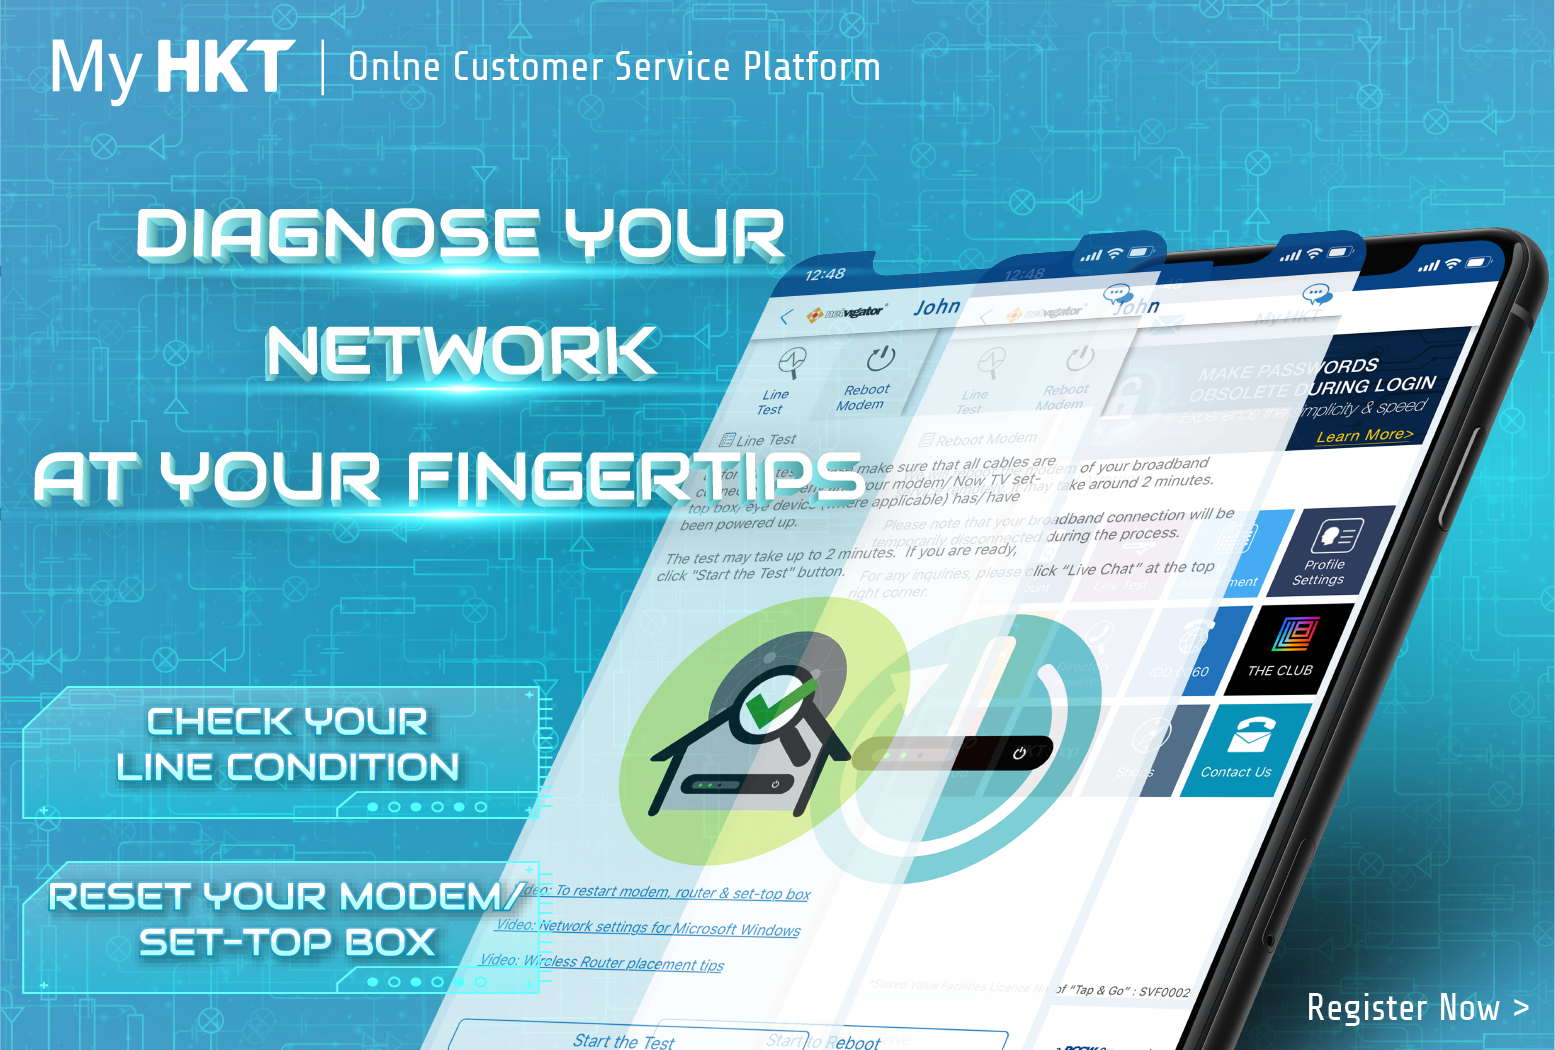 Diagnose your network at your fingertips